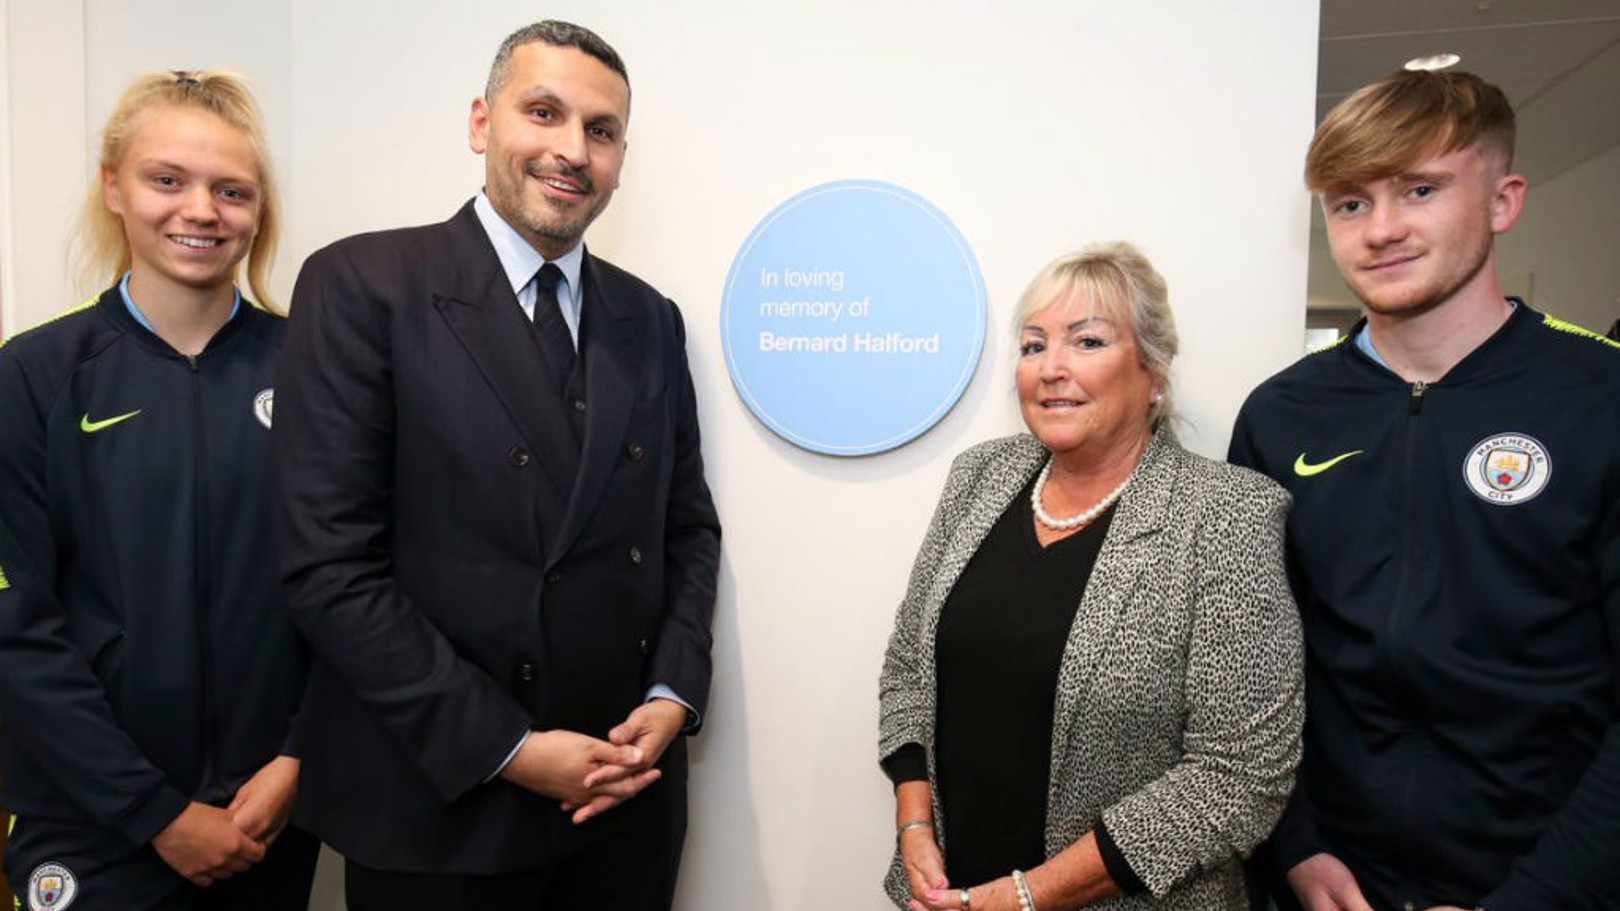 LASTING LEGACY: Esme Morgan, Club chairman Khaldoon Al Mubarak, Bernard's wife Karen Halford and Tommy Doyle at the official opening of the Bernard Halford Auditorium